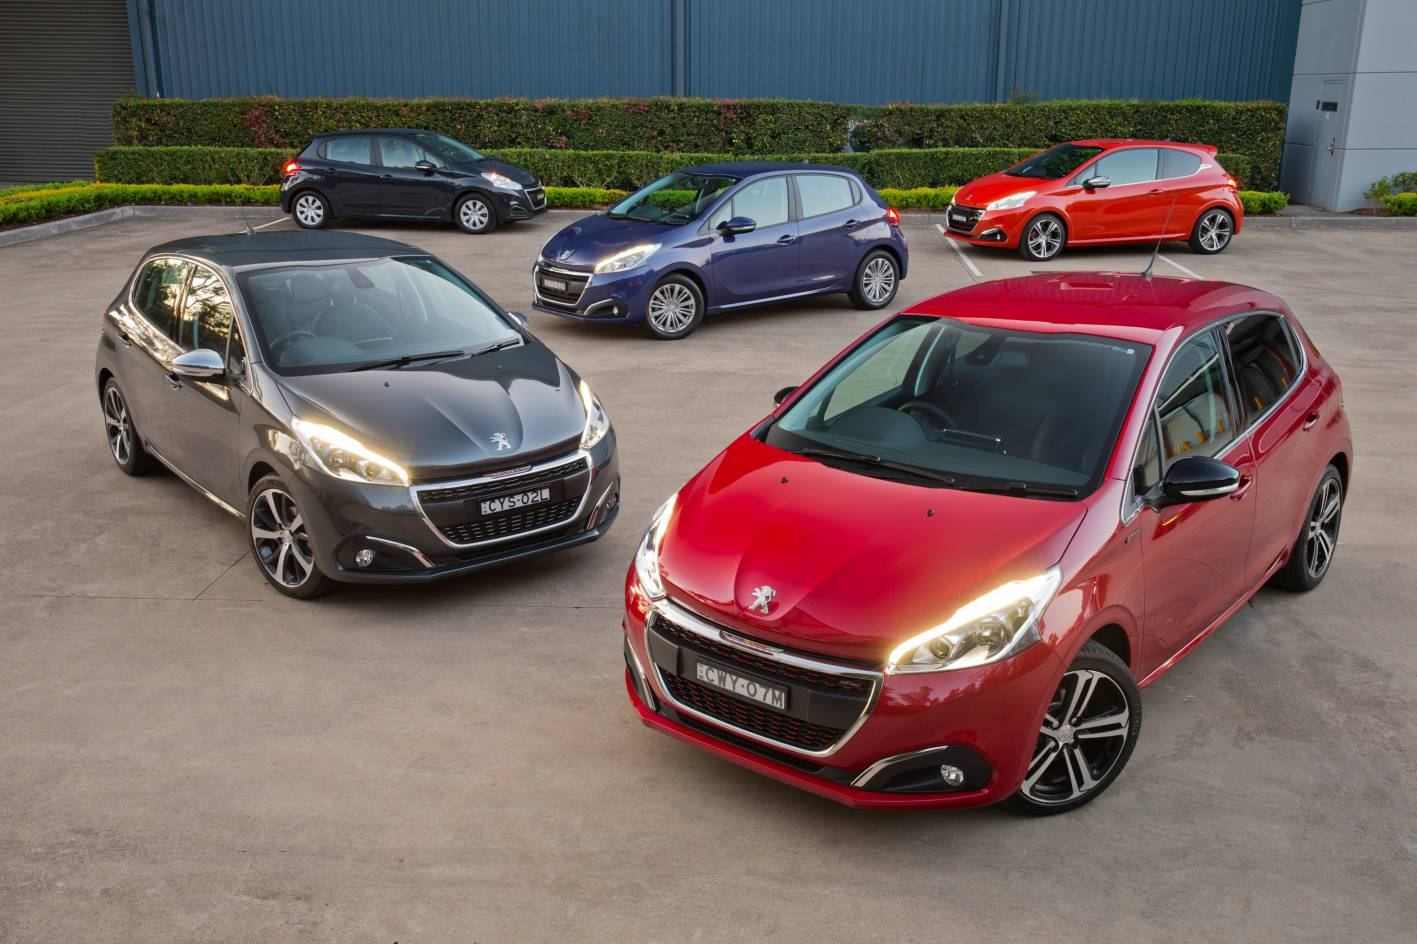 Peugeot 208 updated for 2015, on sale in Australia from $15,990 ...